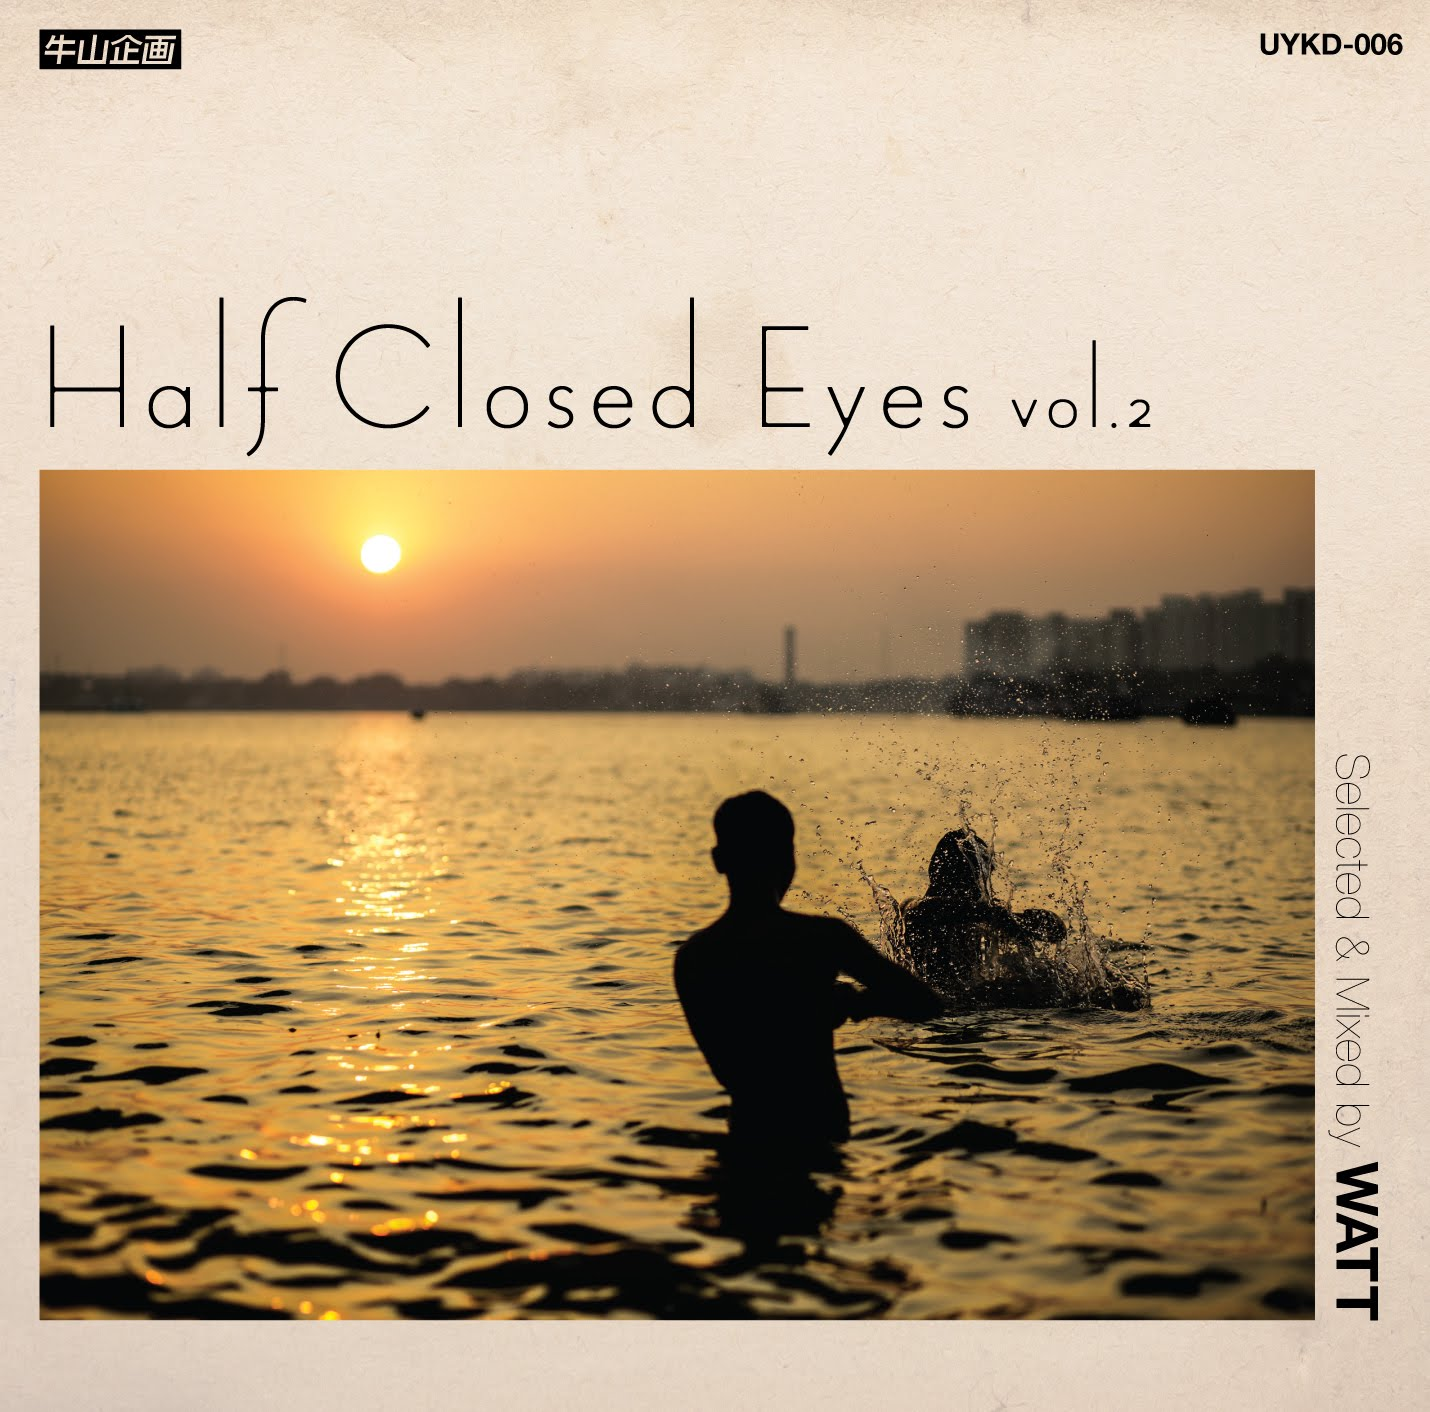 Half Closed Eyes Vol.2